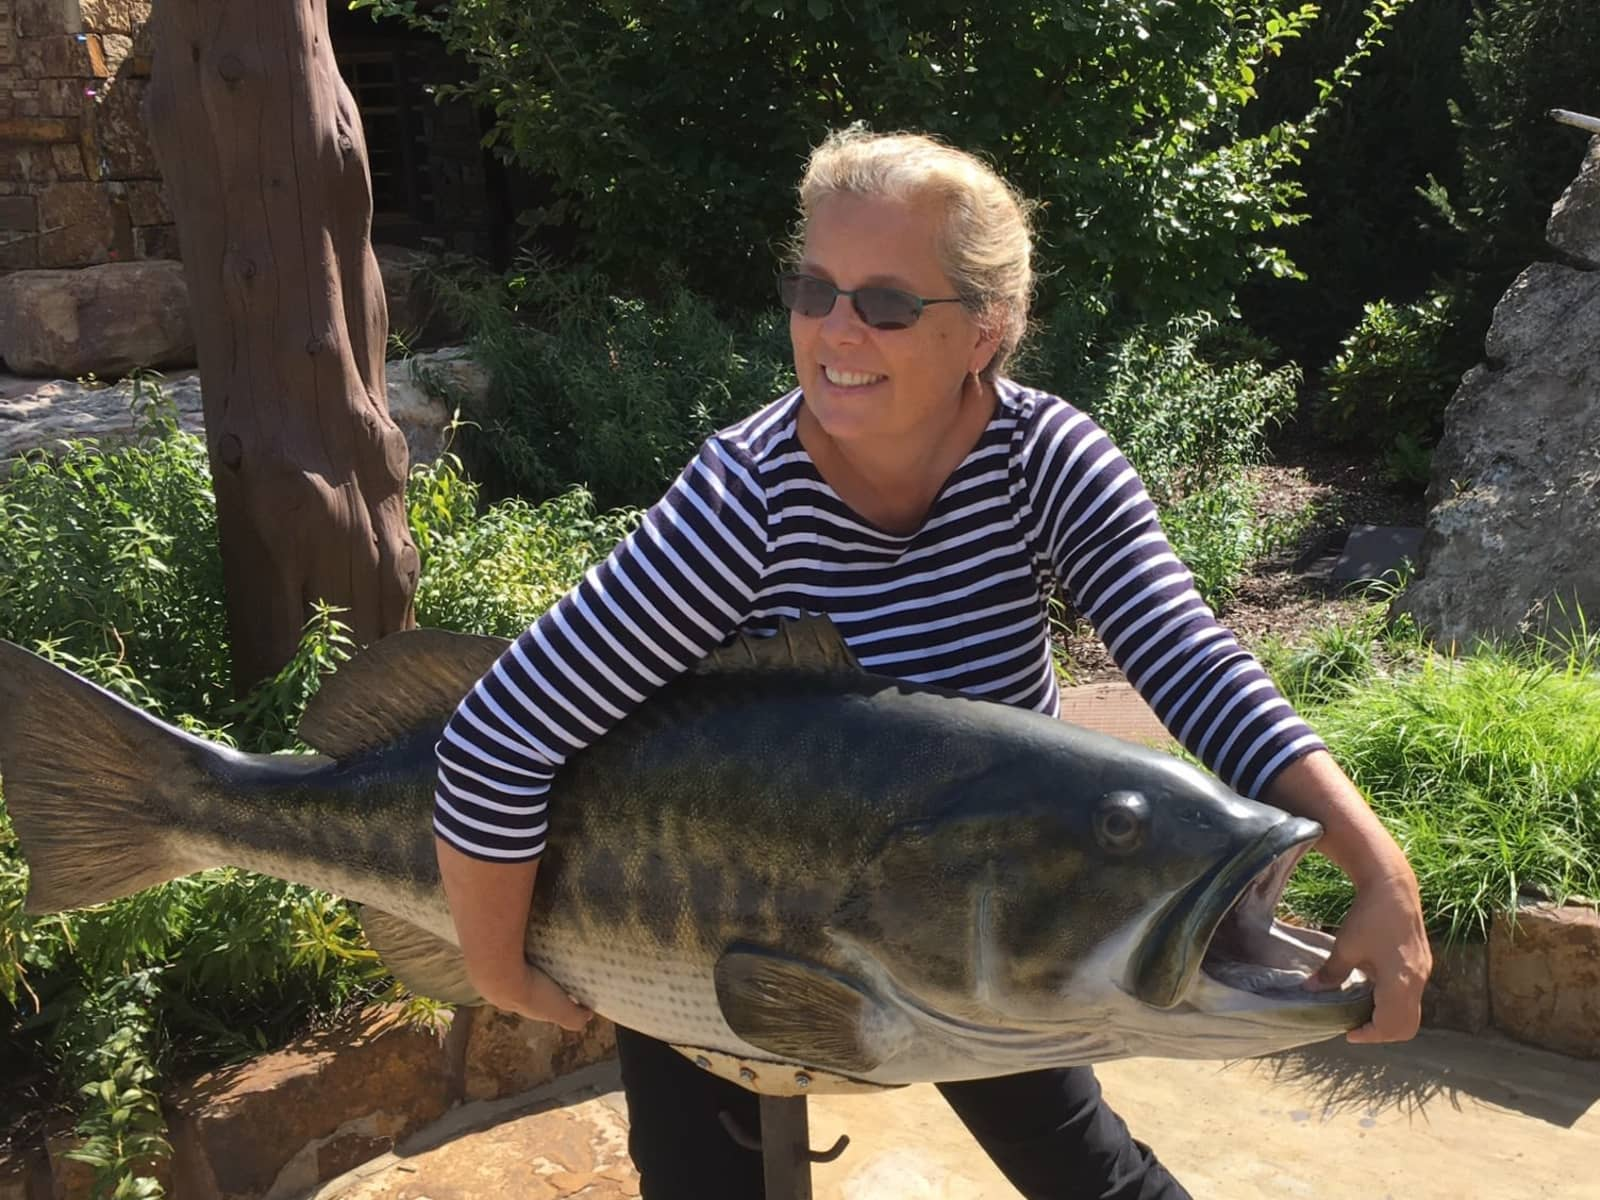 Peggy from St. Louis, Missouri, United States